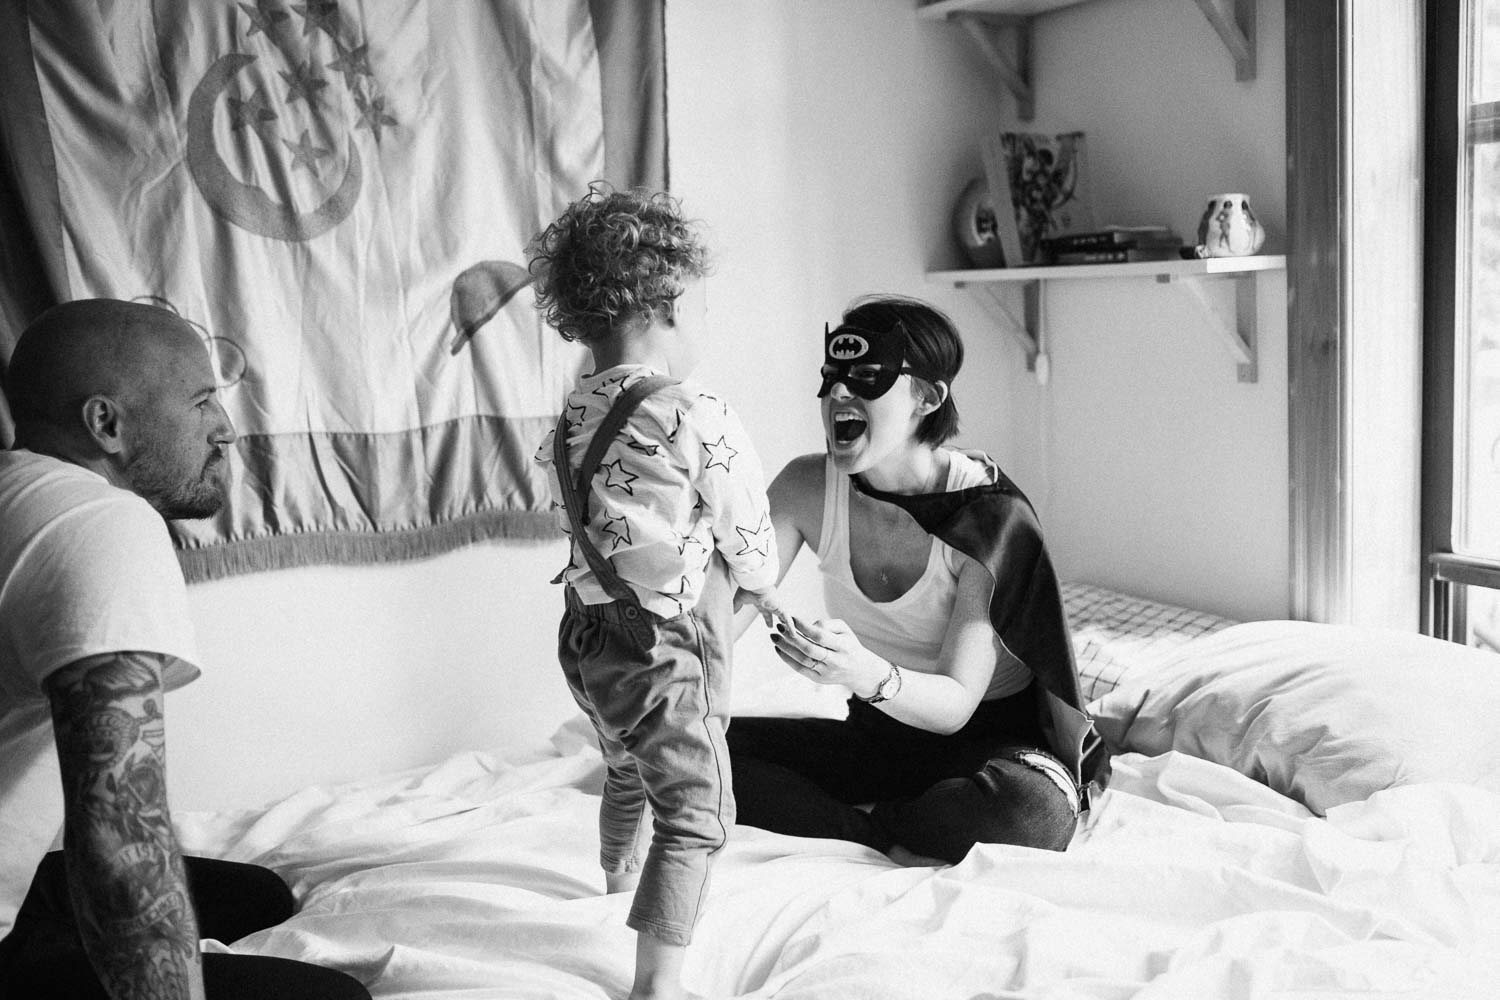 candid-black-and-white-playful-moment-between-mother-and-son-on-bed-during-in-home-session-with-jen-fairchild-photography-salt-lake-city-utah